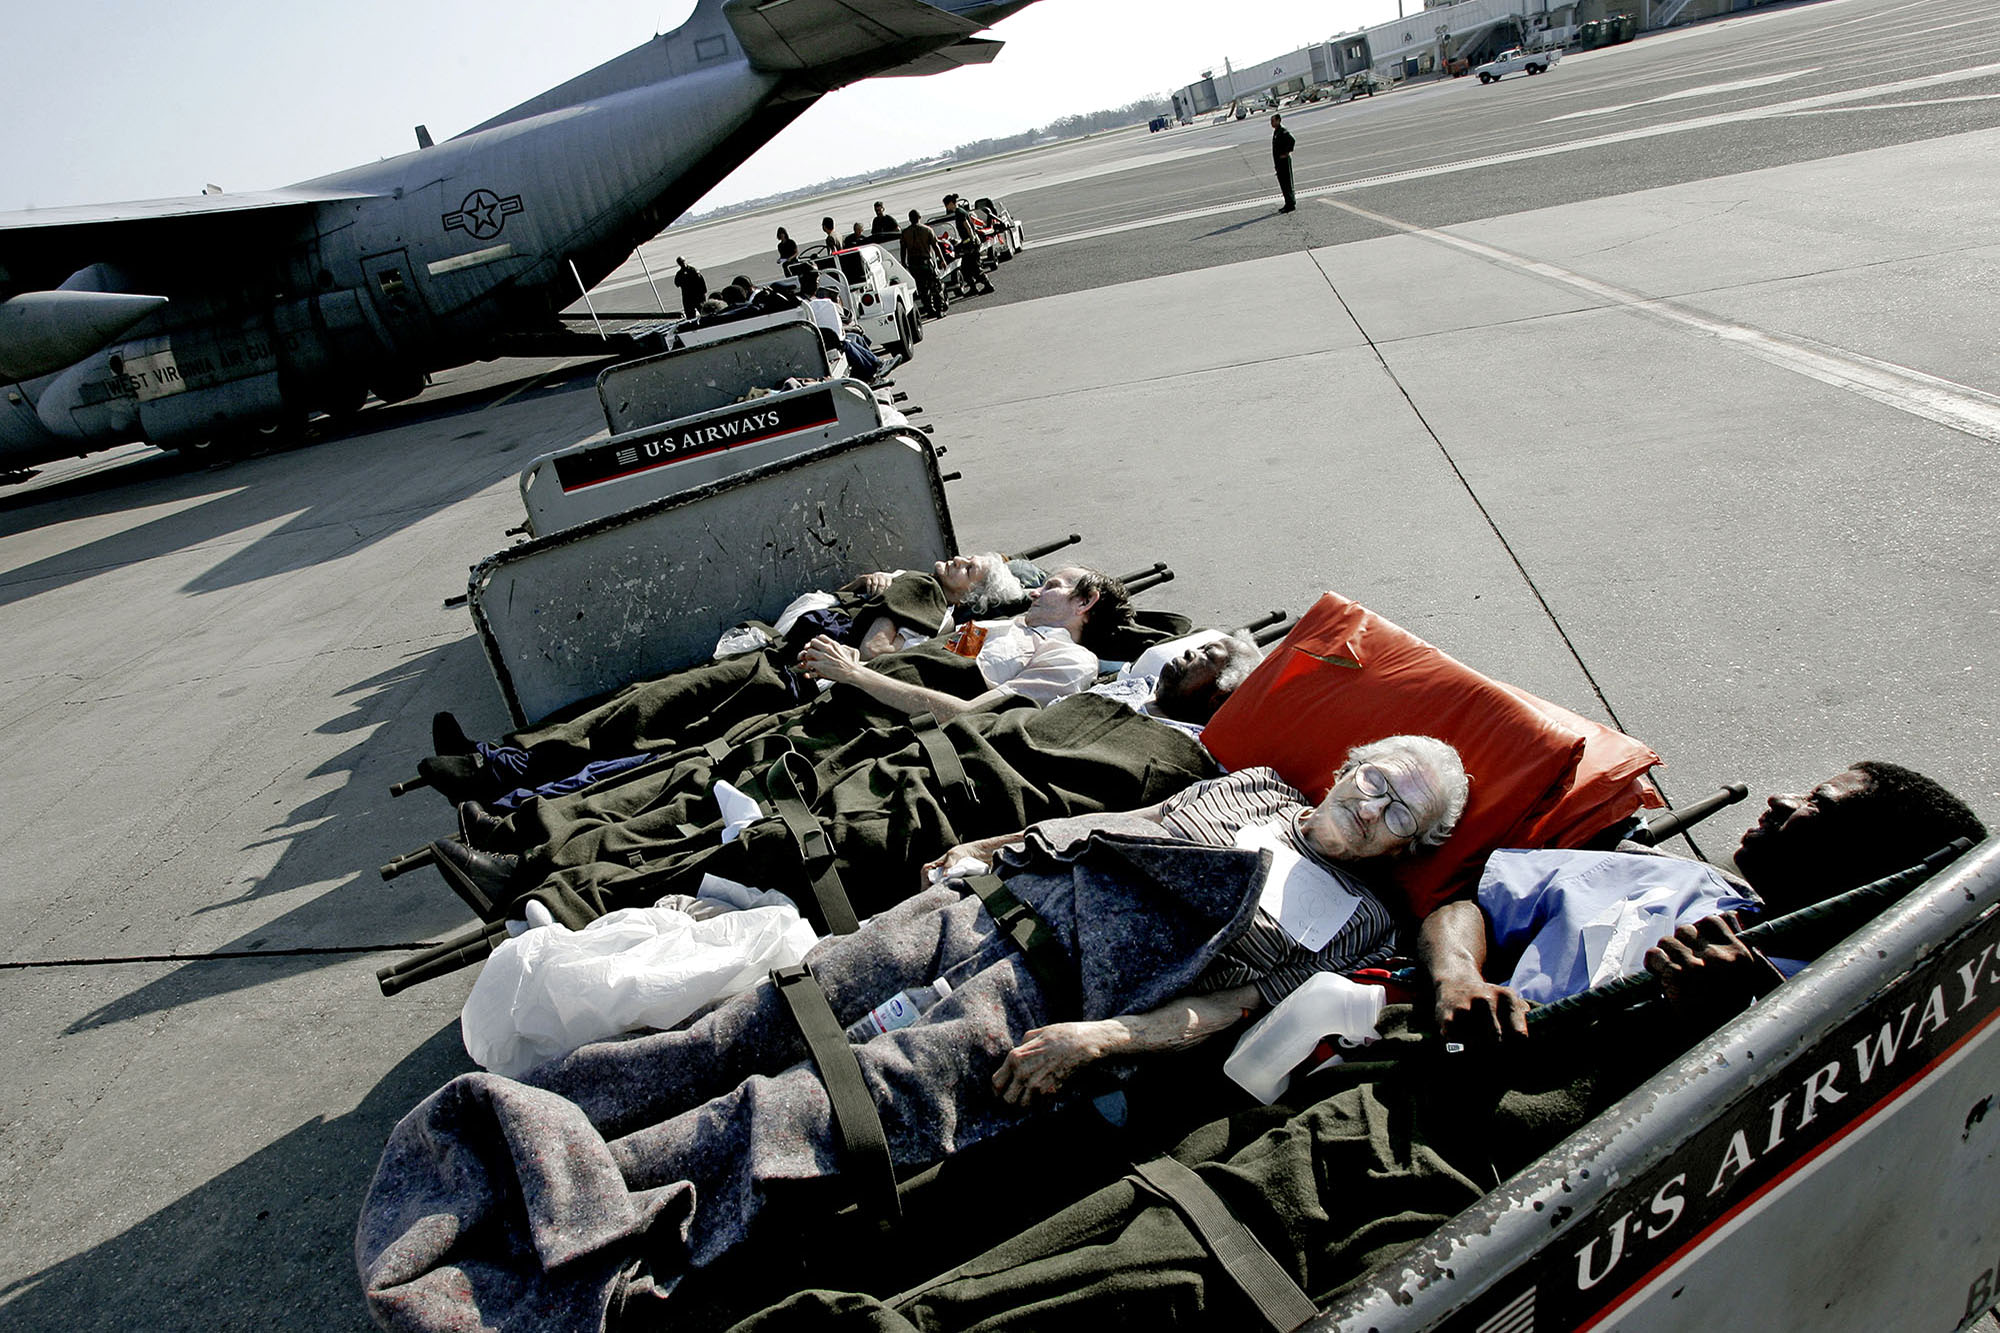 Injured people are flown out to hospitals in other cities.